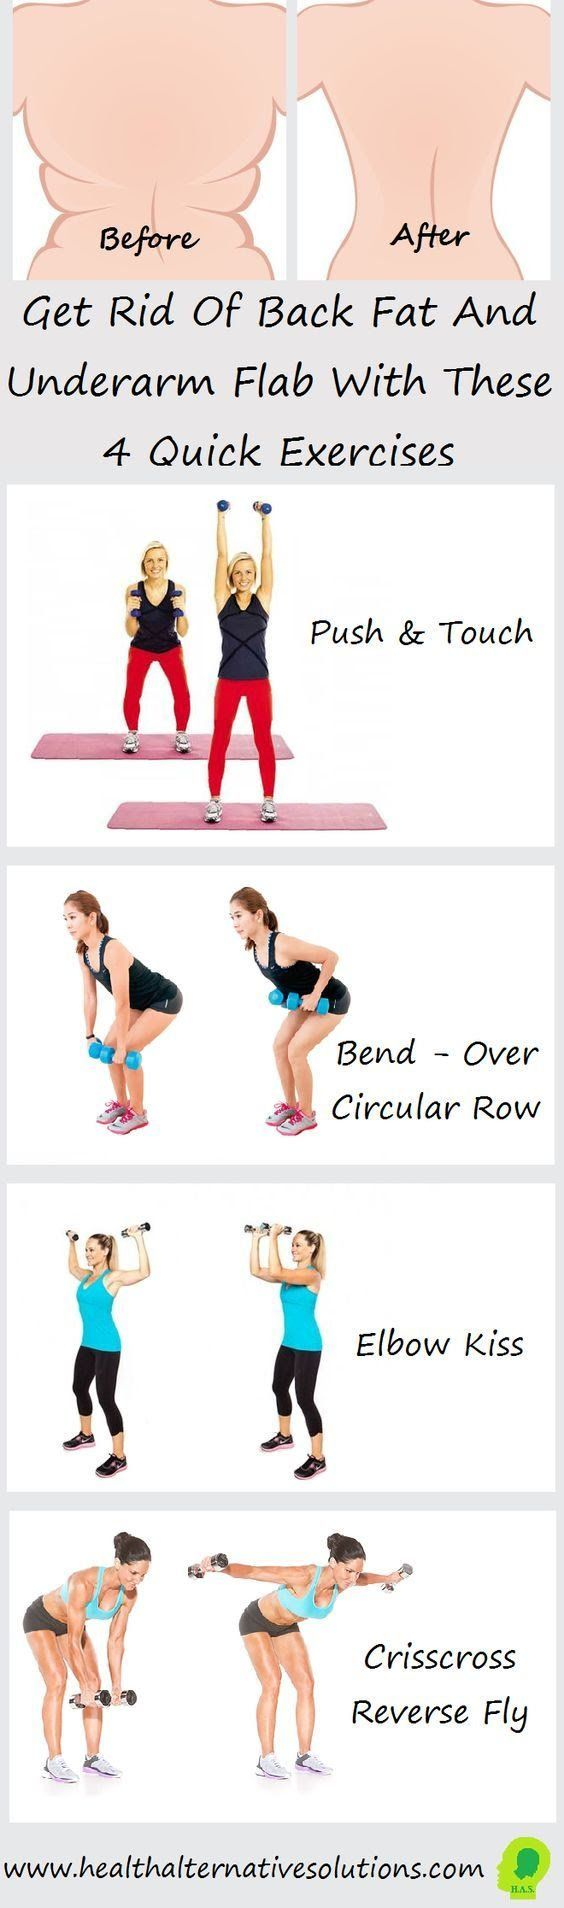 feiyuekungfushoes — Fitness means being able to perform physical...